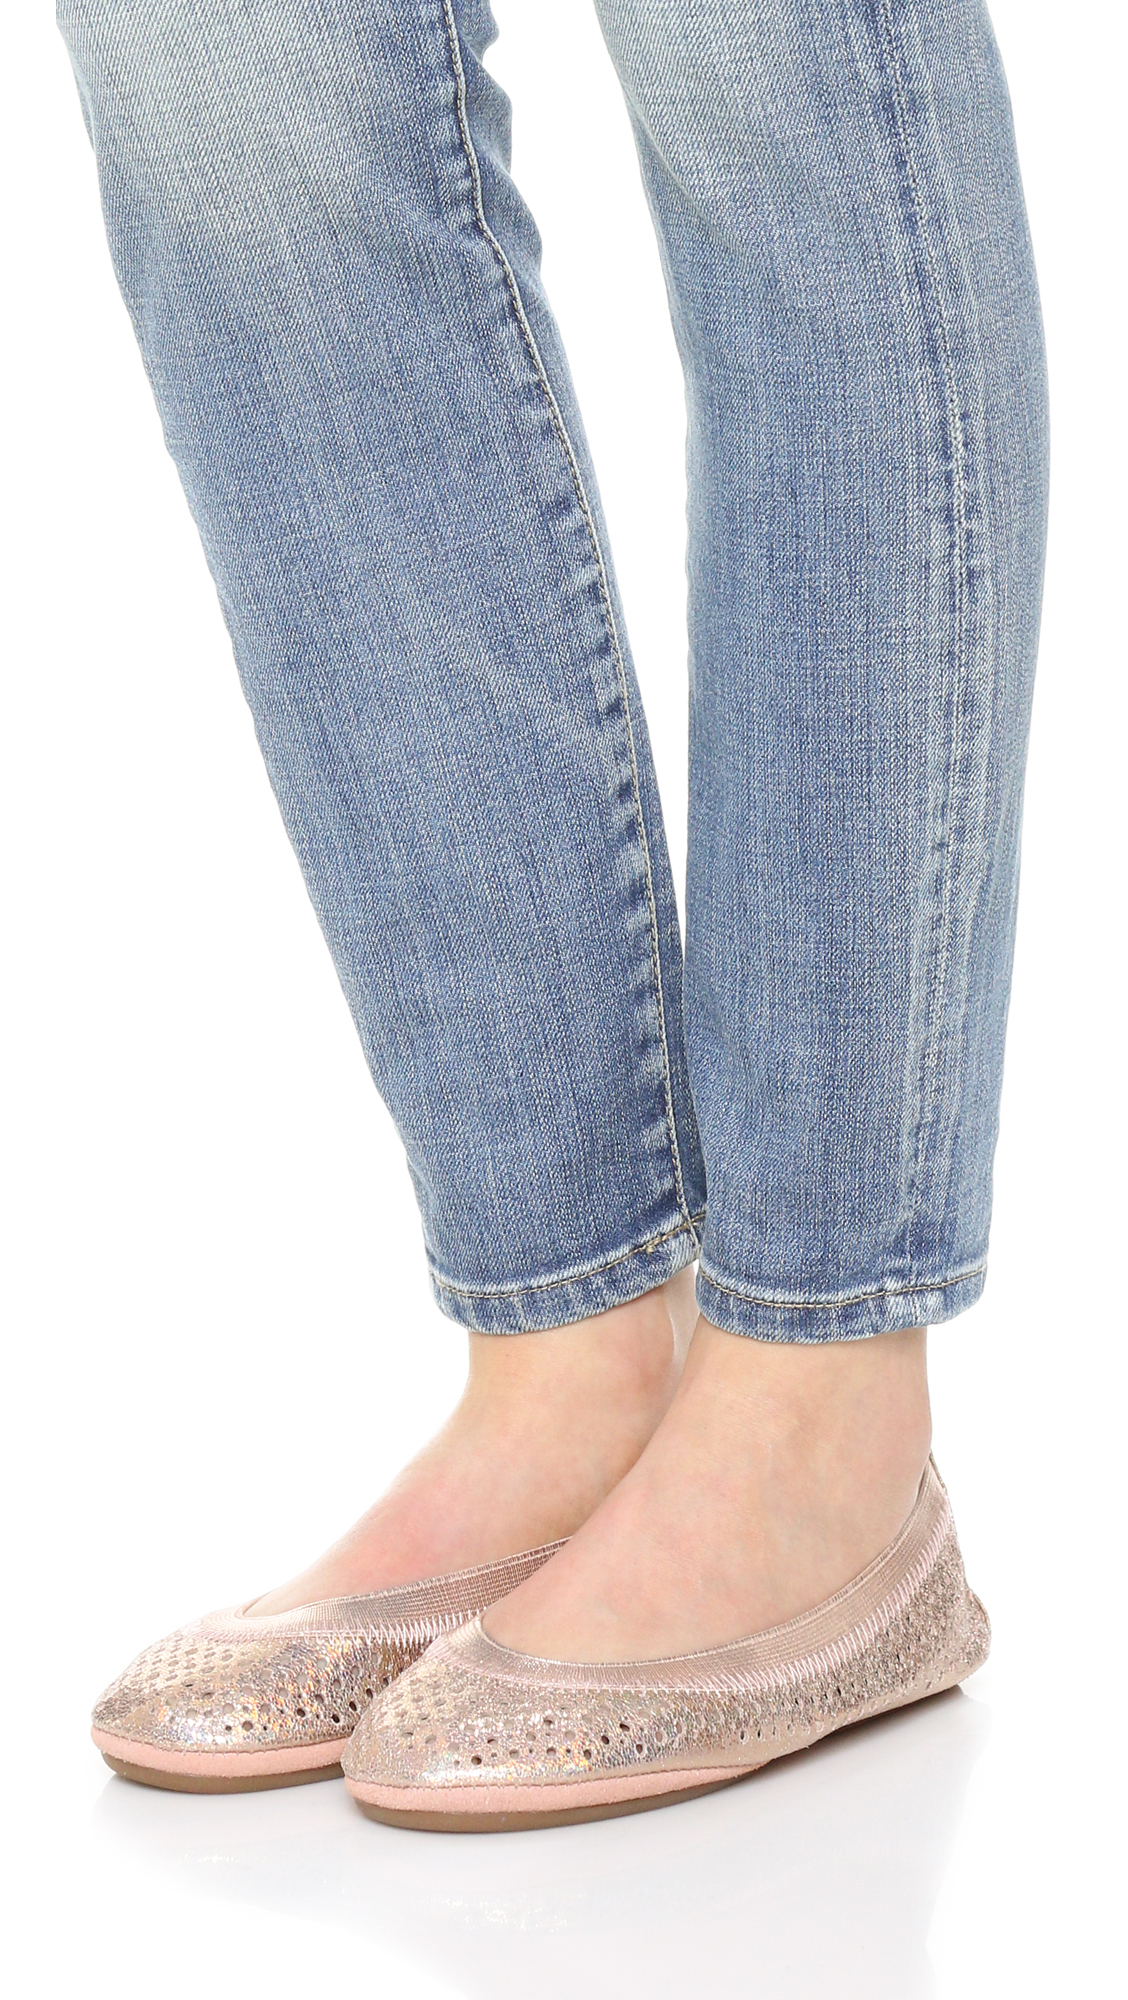 Womens Samara 2.0 Ballet Flat Yosi Samra Outlet Best Sale Classic Buy Cheap Outlet Fashion Style Cheap Price For Sale Very Cheap UOFqpMp